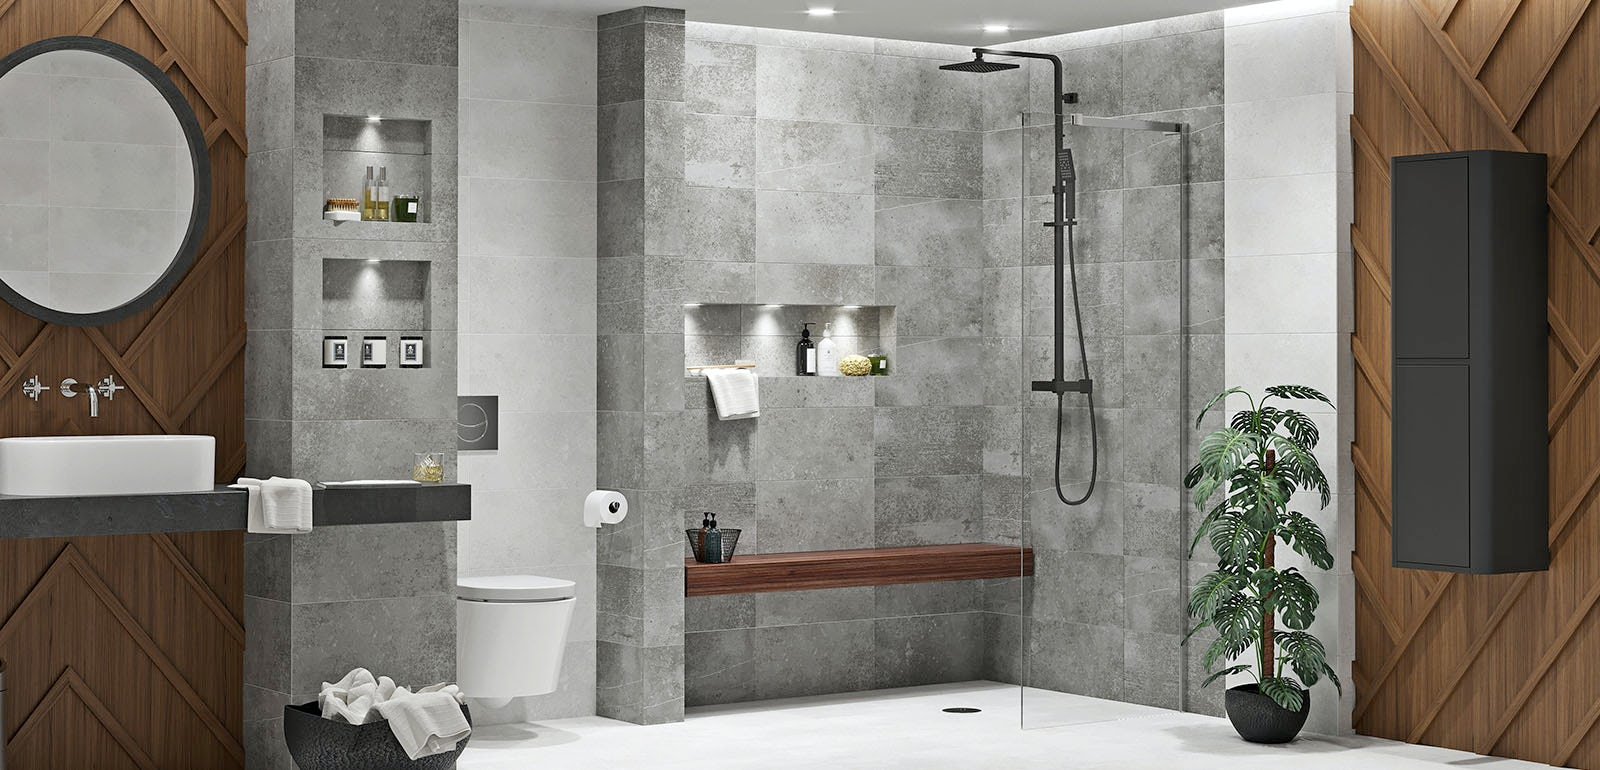 5 Reasons Why A Wet Room Is A Great Bathroom Option Victoriaplum